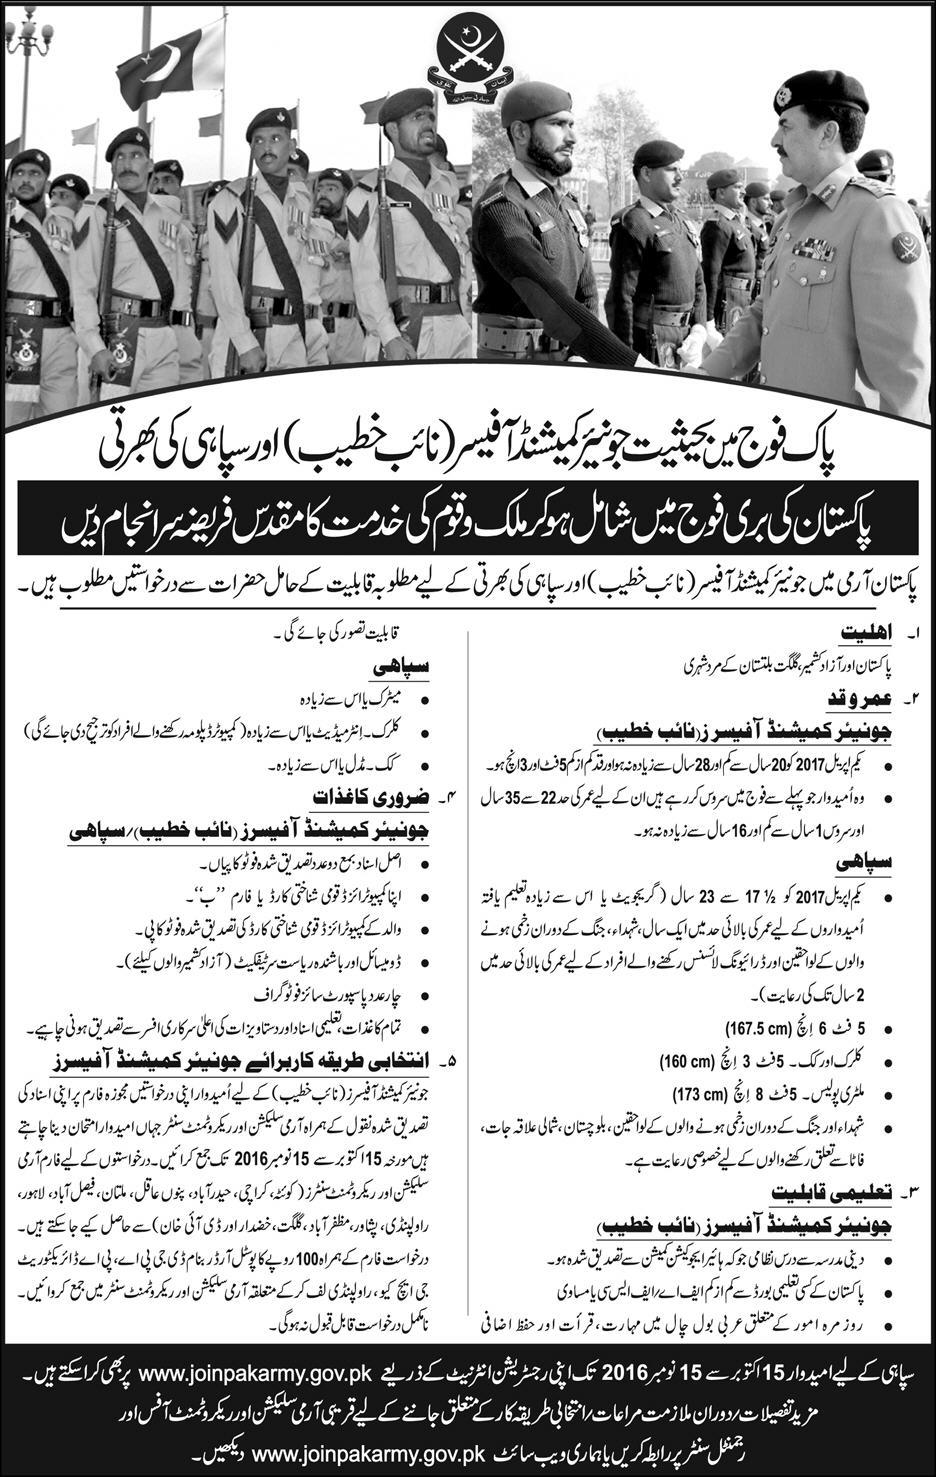 Join Pak Army as Commissioned Officer Clerks Constable Online Registration